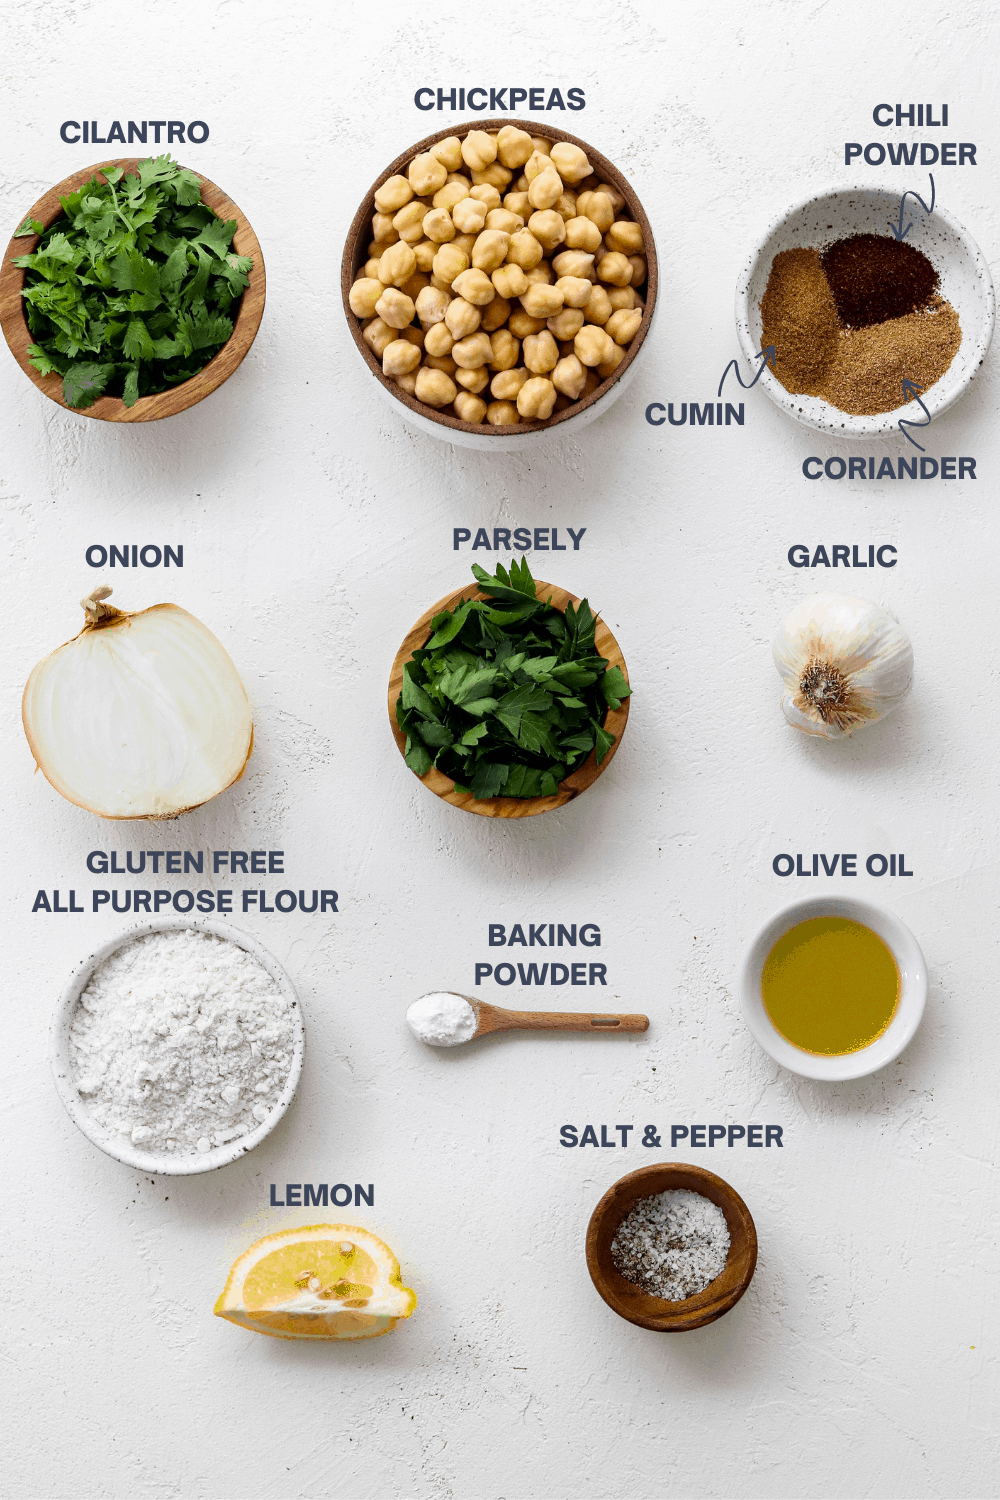 Bowl of chopped cilantro next to a bowl of chickpea with a bowl of spices next to it, a sliced onion, bowl of parsley, bulb of garlic, bowl of olive oil, bowl of flour, wooden spoon with baking powder and a slice of lemon in front of it.